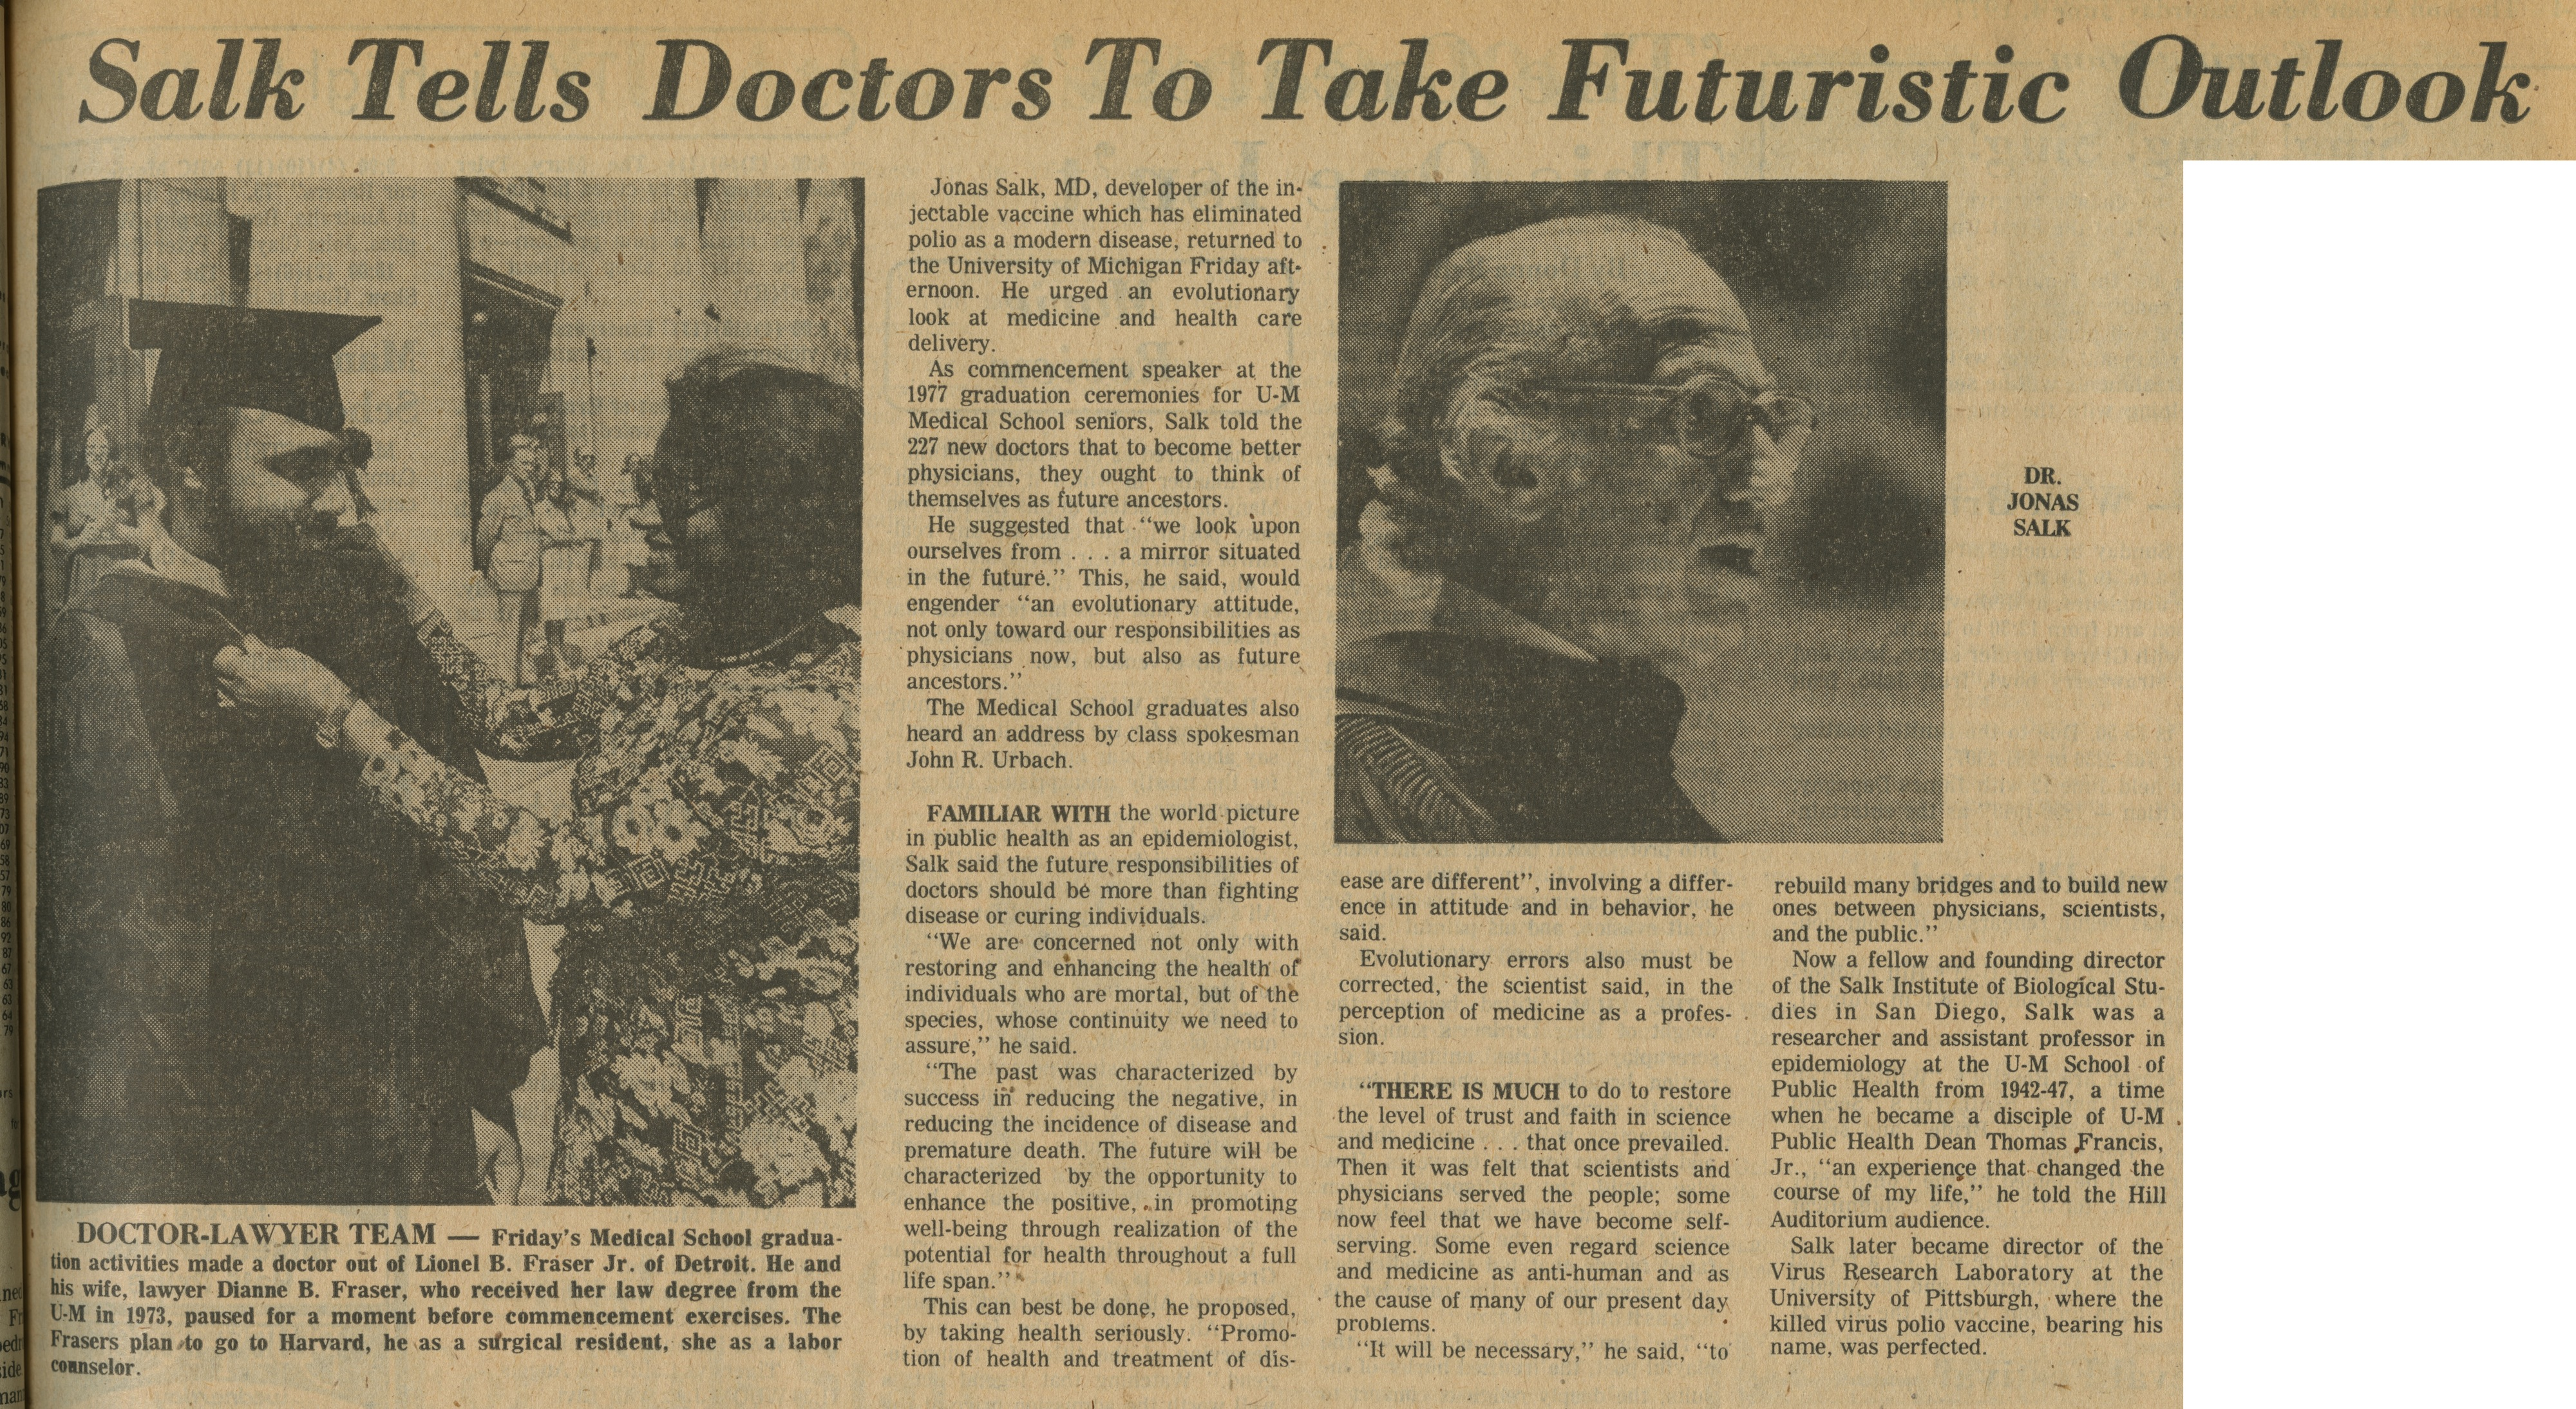 Salk Tells Doctors To Take Futuristic Outlook image